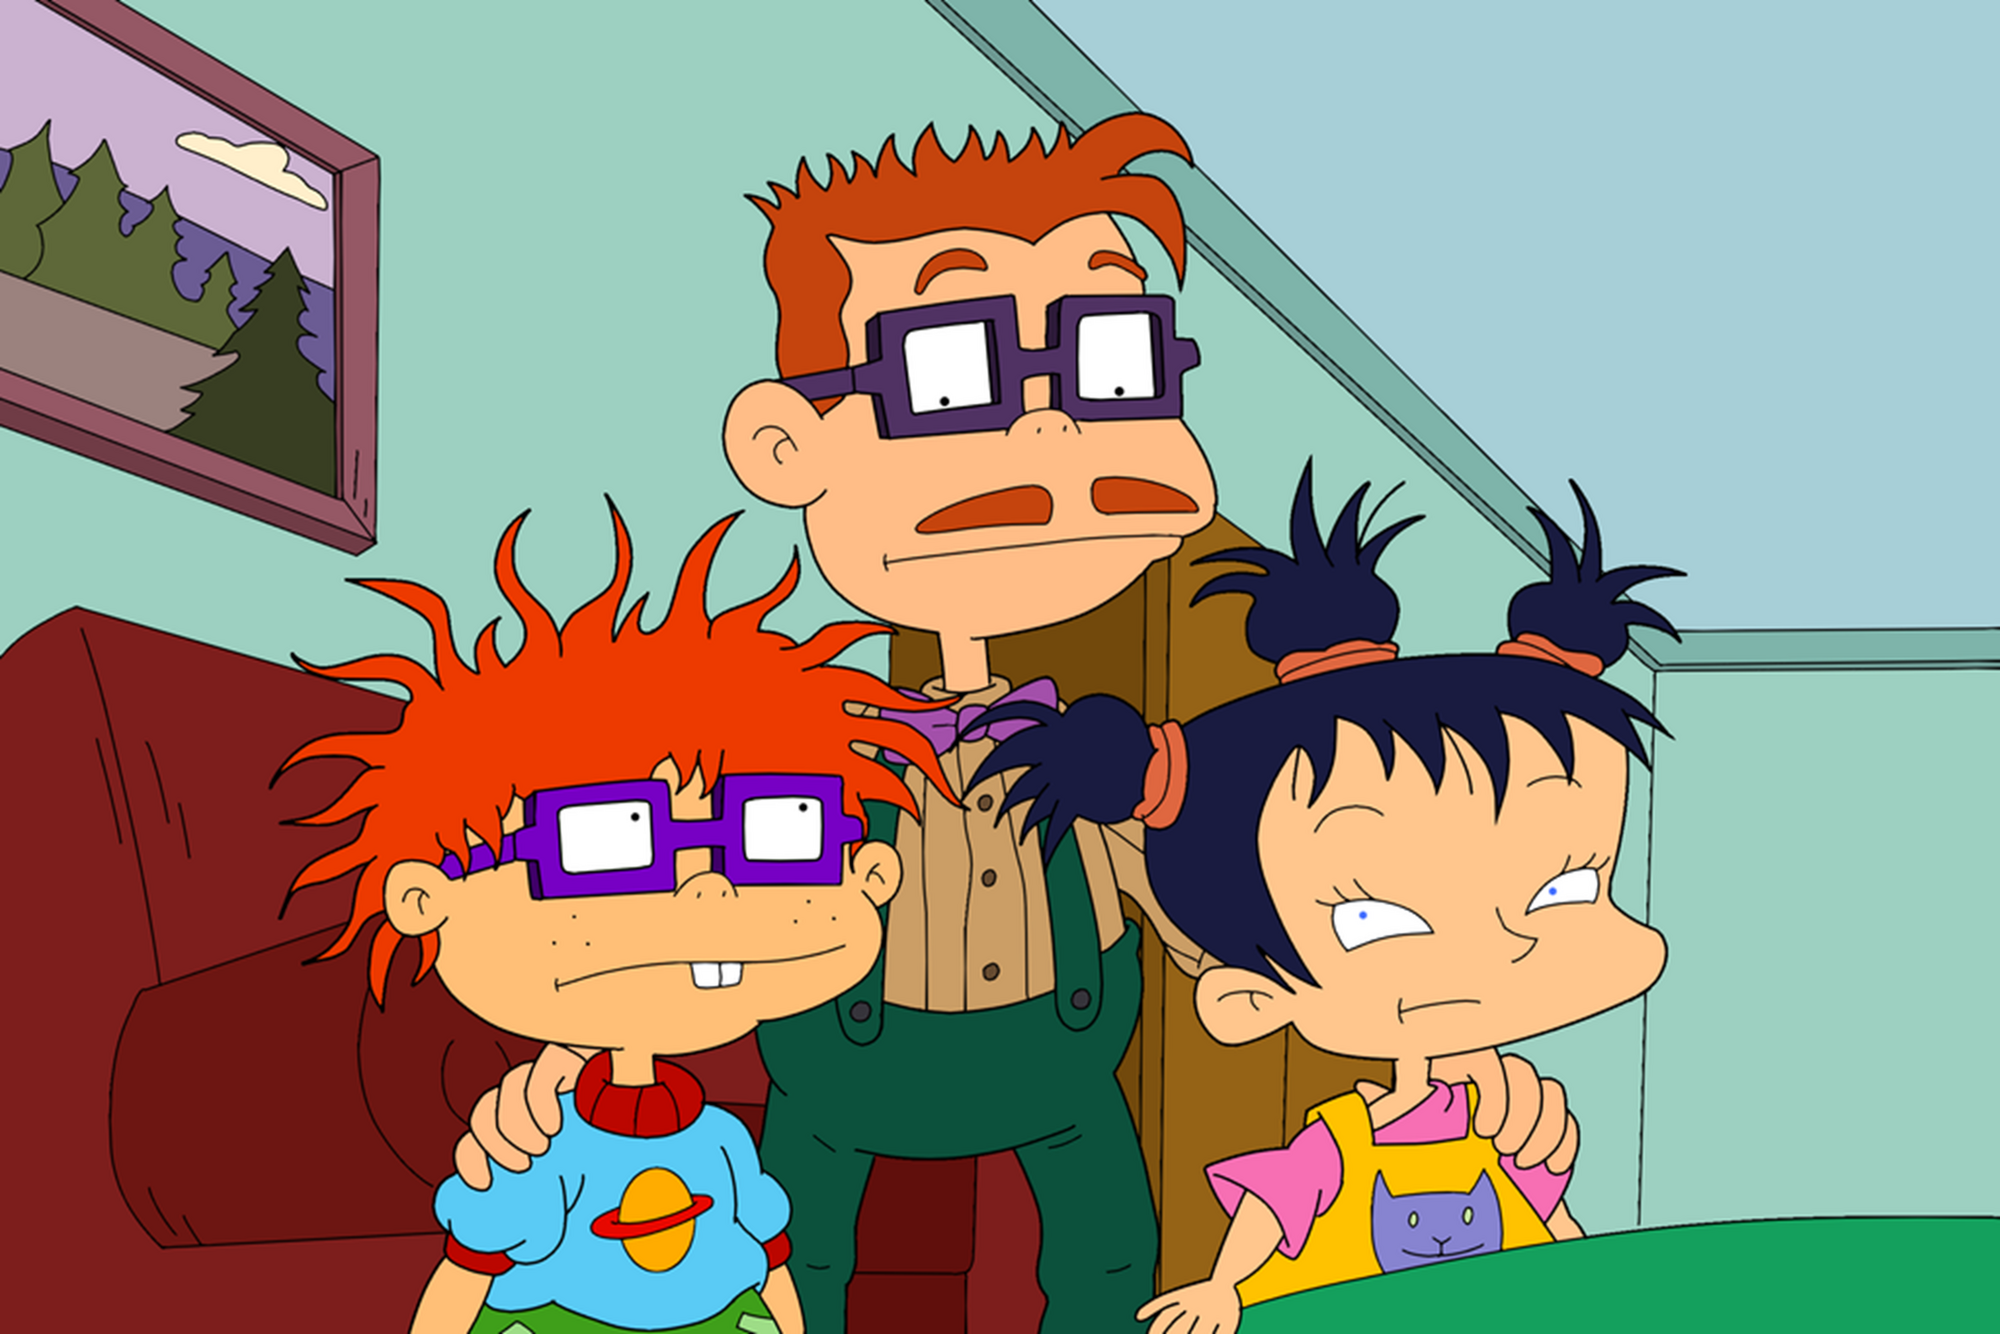 Kimi loves her new big brother Chuckie. Rugrats. |Rugrats Chuckie And Kimi